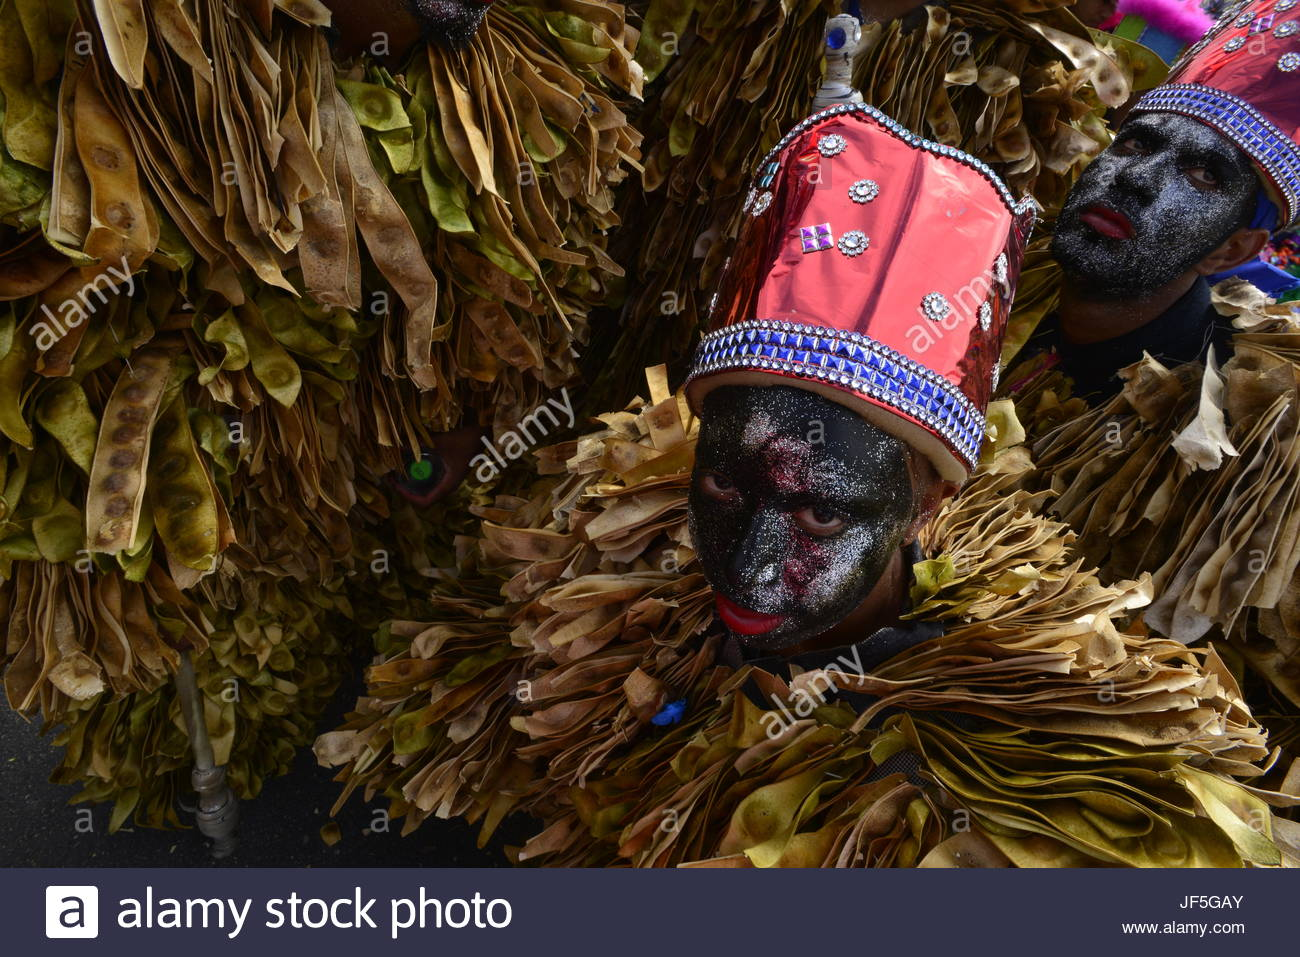 Men in costumes and face paint during Carnival. - Stock Image